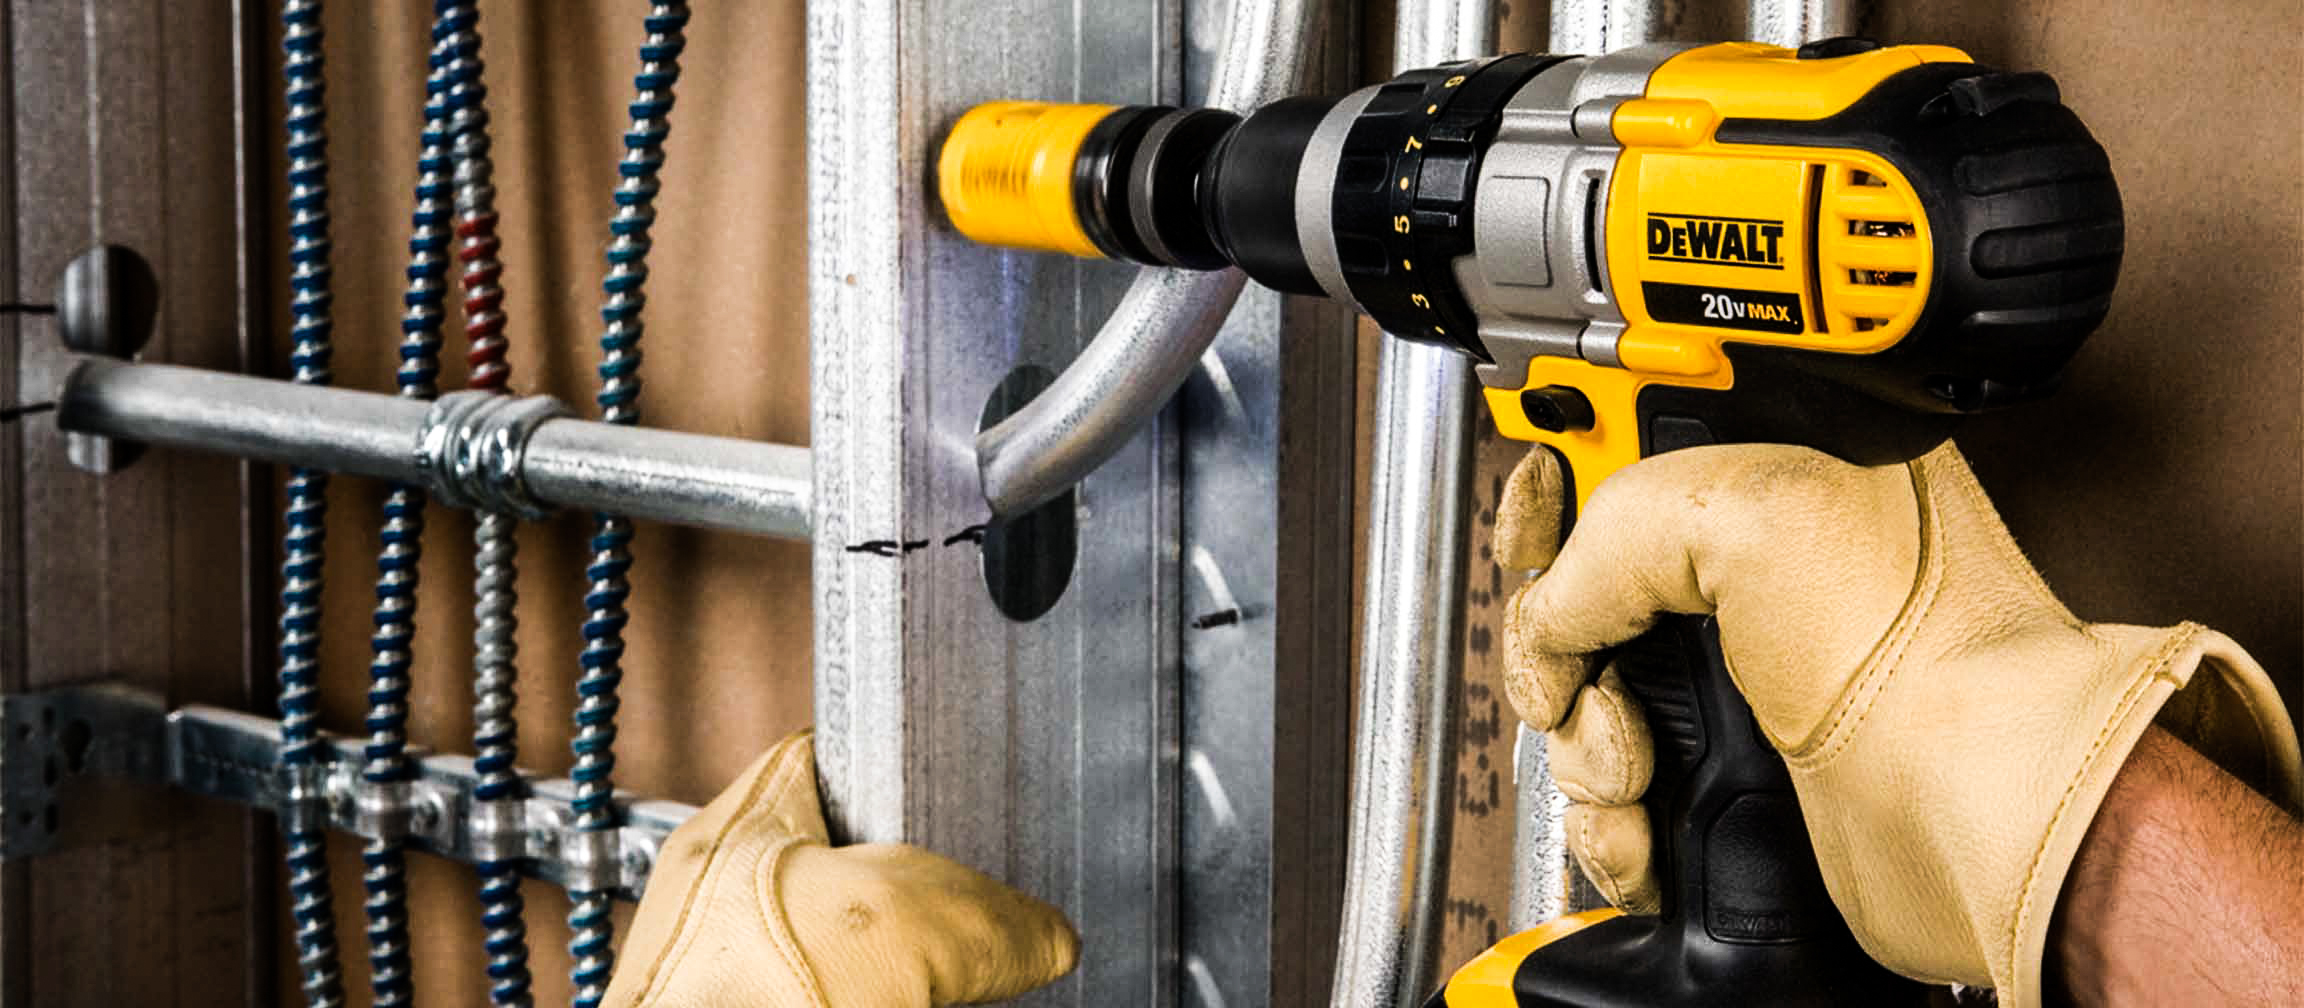 DIY Power Tools - DEWALT Drill